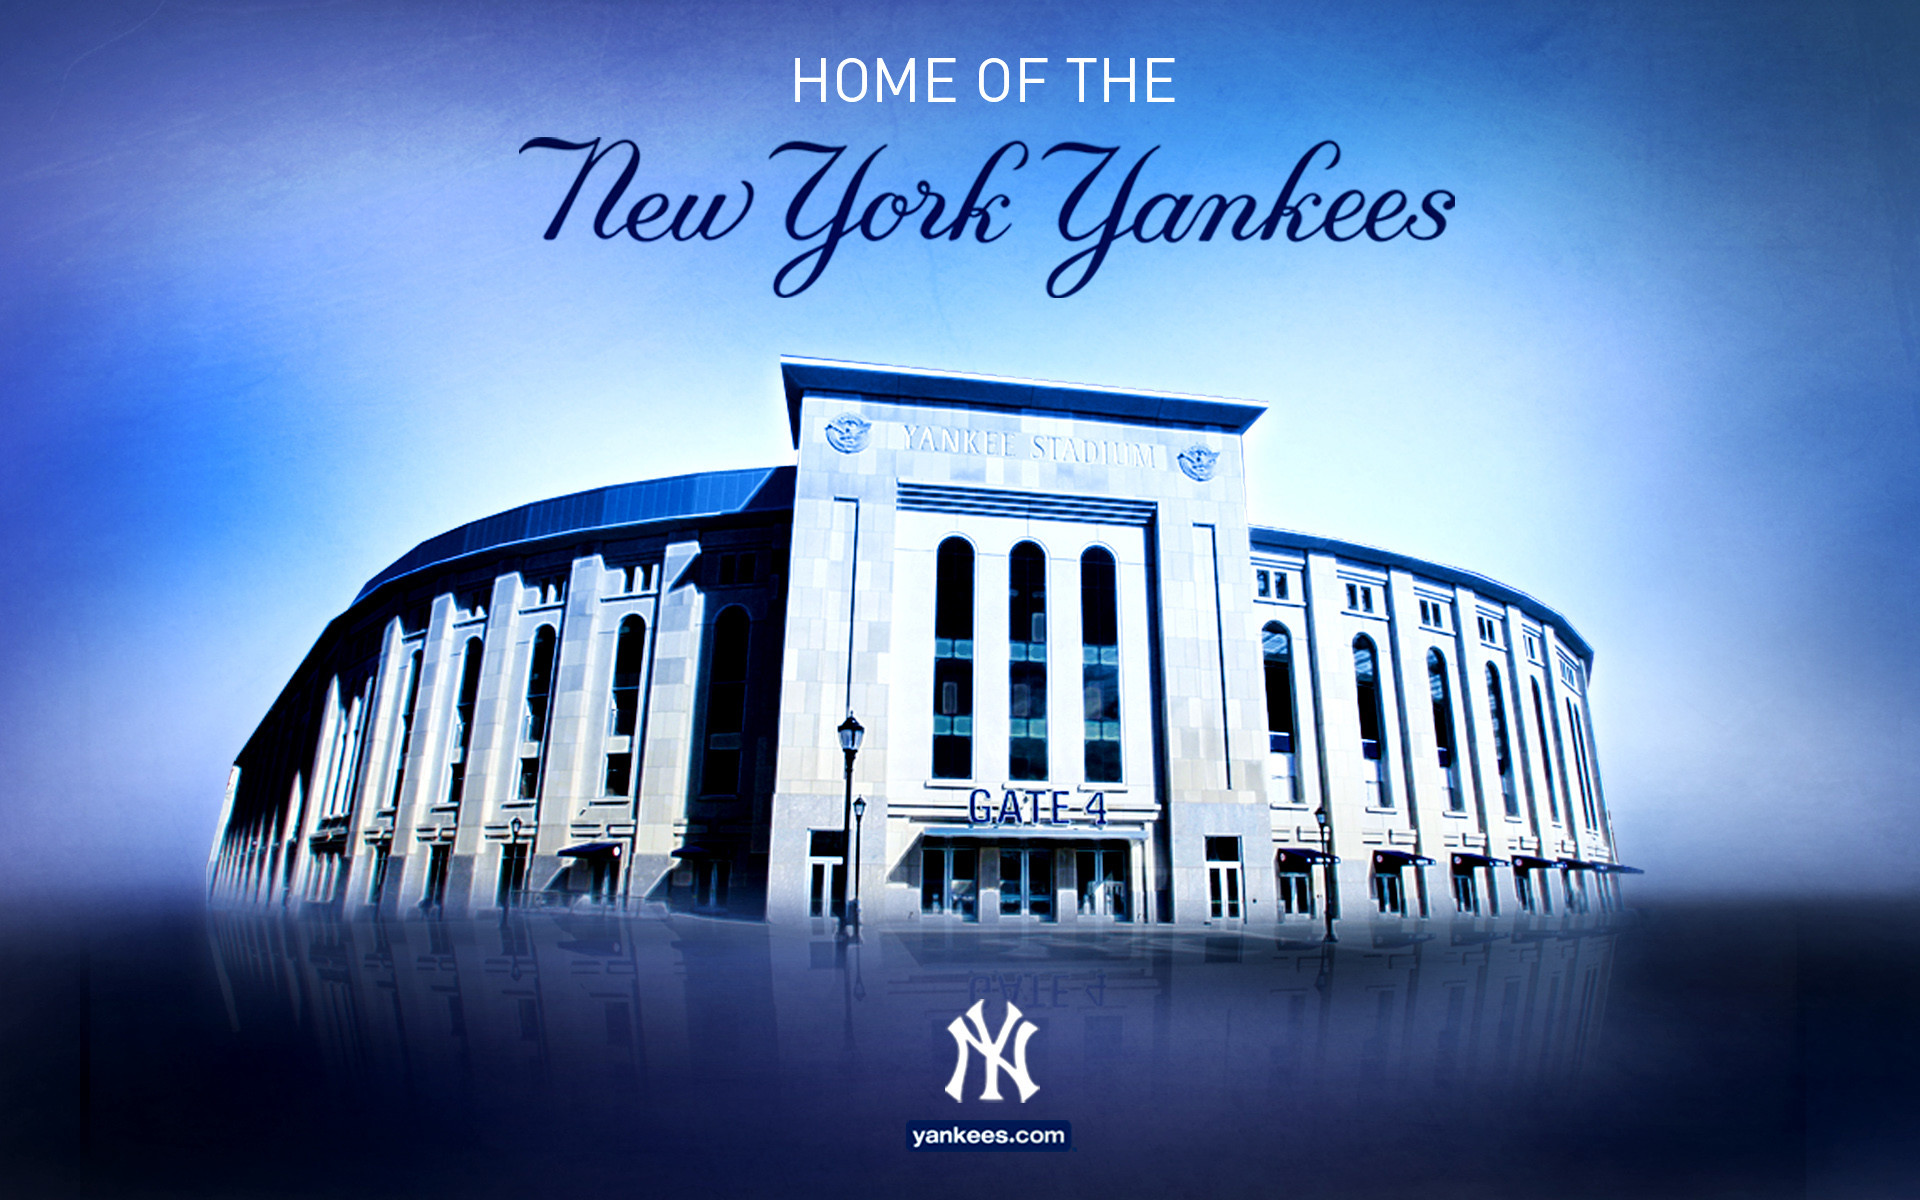 Popular Screensavers And Wallpaper 47 Images: Ny Yankee Screensavers And Wallpapers (57 Images